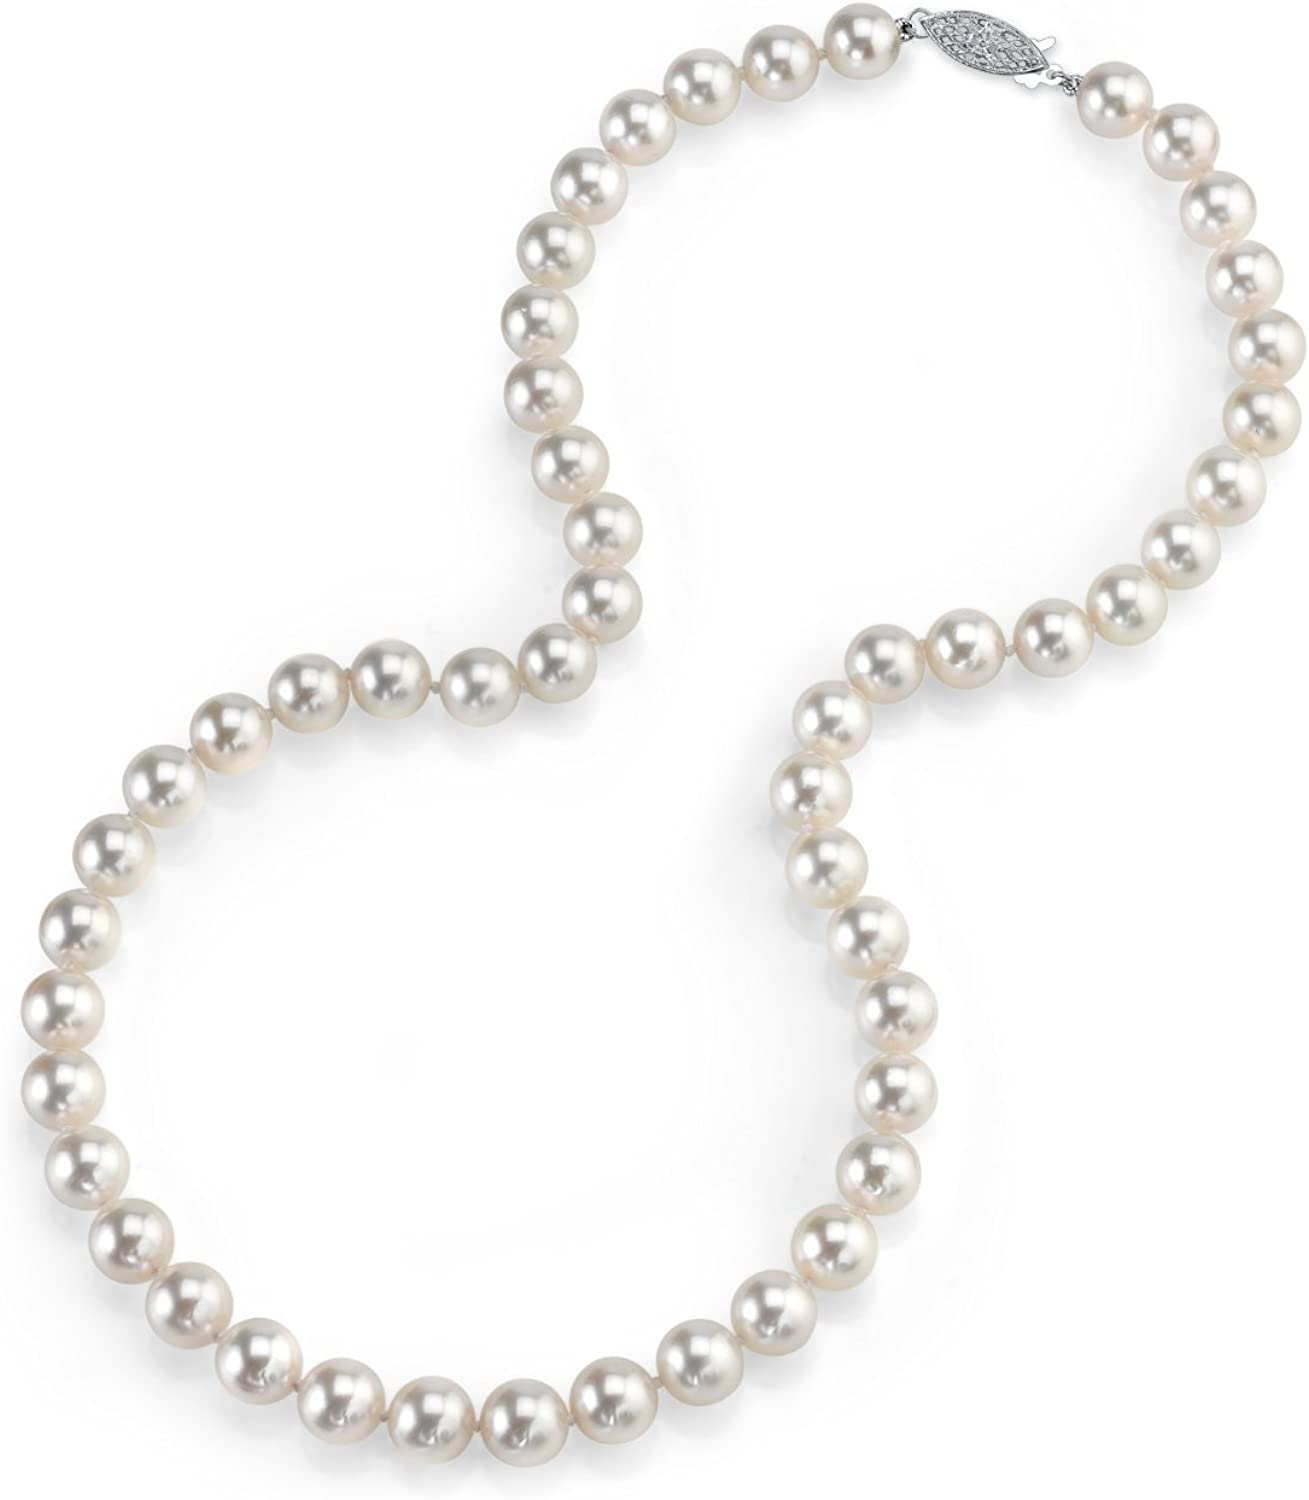 THE PEARL SOURCE 14K Gold 7.5-8.0mm Round Genuine White Japanese Akoya Saltwater Cultured Pearl Necklace in 20